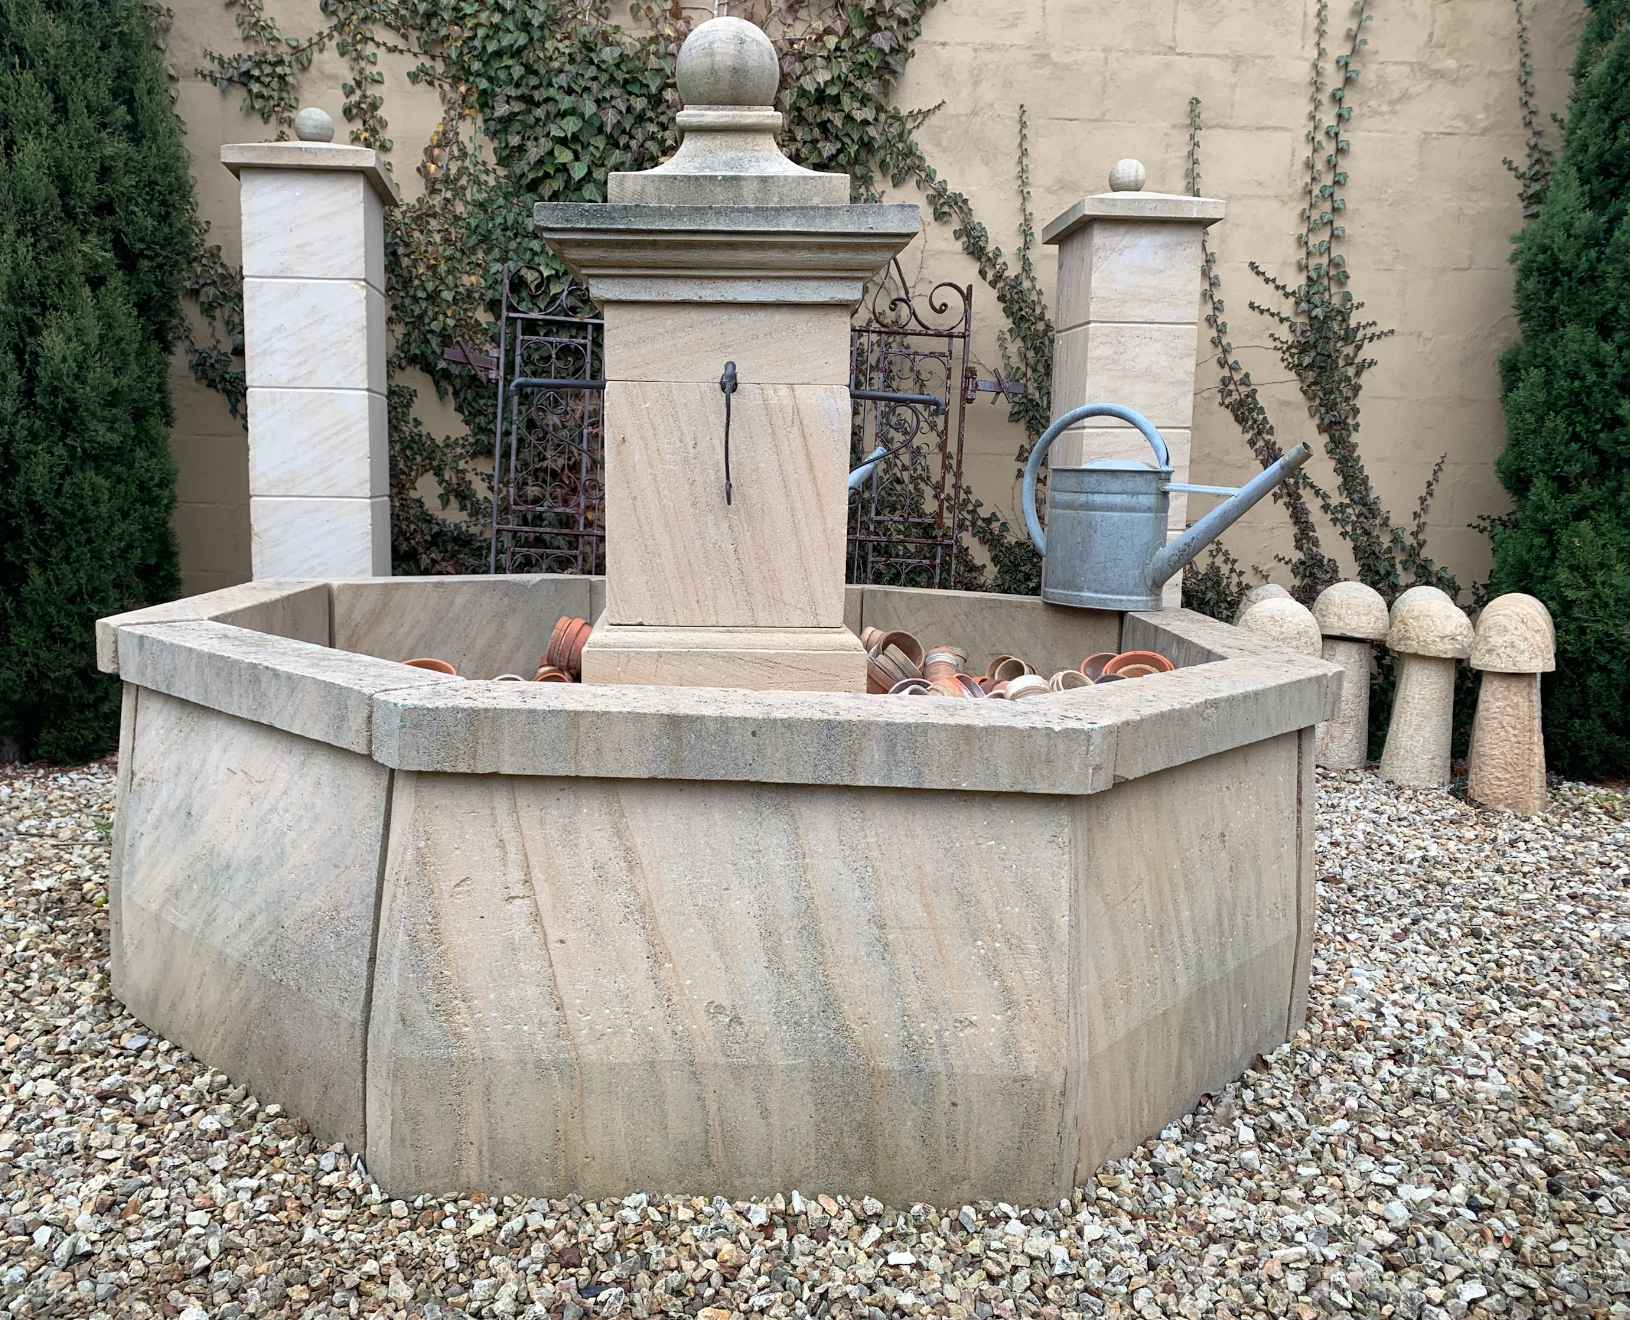 FWF1820 Abbeville stone fountain with brass spouts  $4500